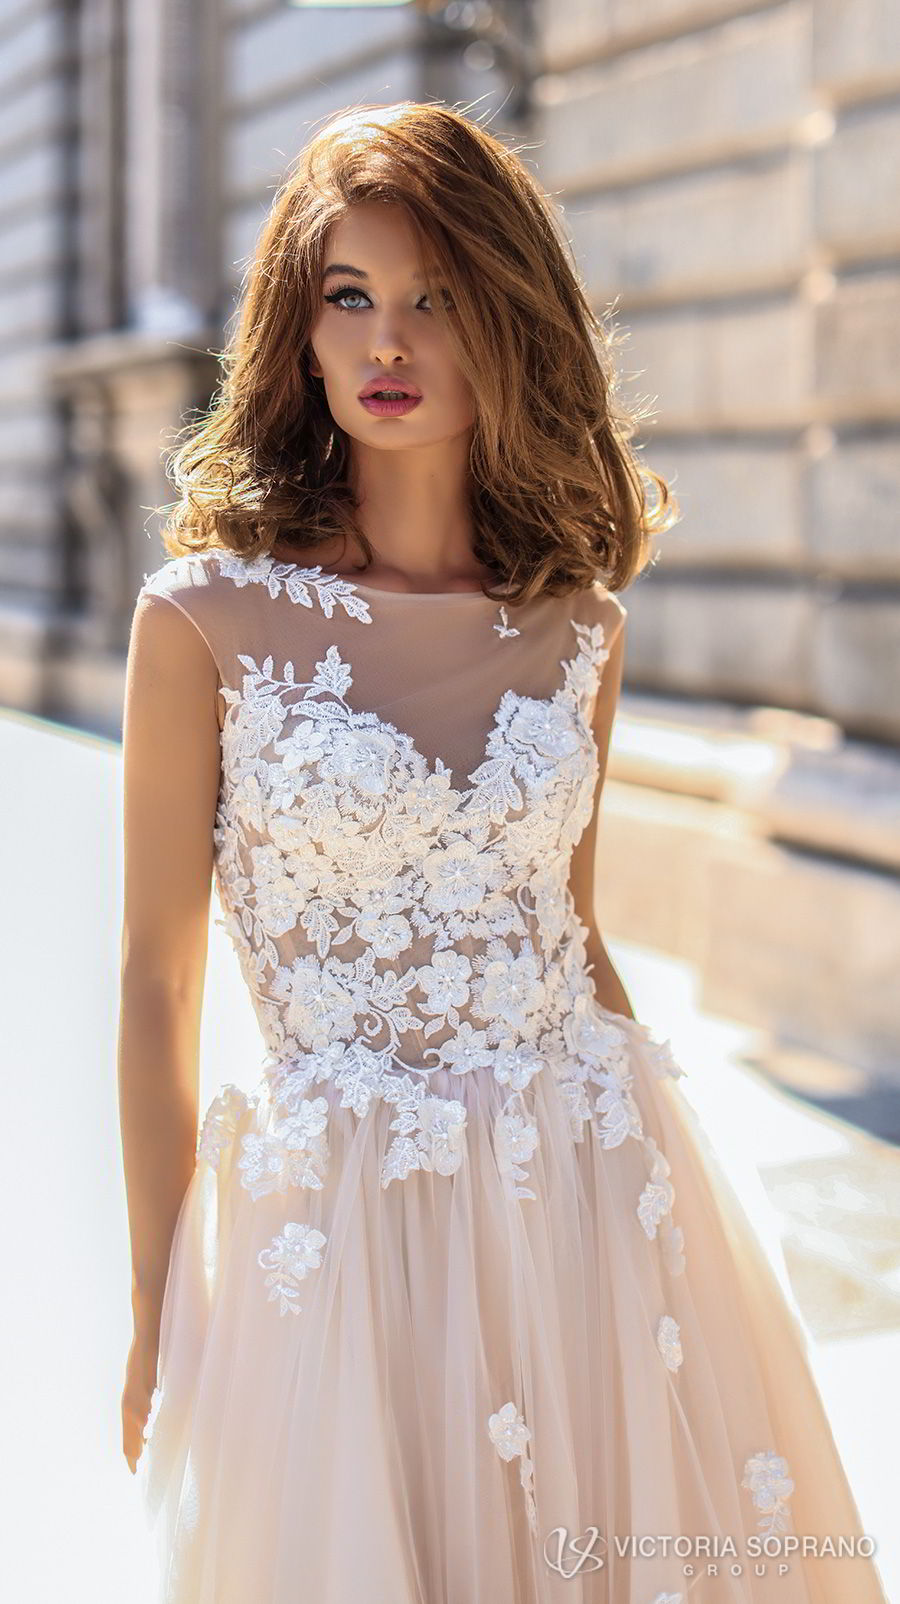 victoria soprano 2018 bridal sleeveless illusion jewel sweetheart neckline heavily embellished bodice romantic blush color a line wedding dress sheer lace back chapel train (selena) zv